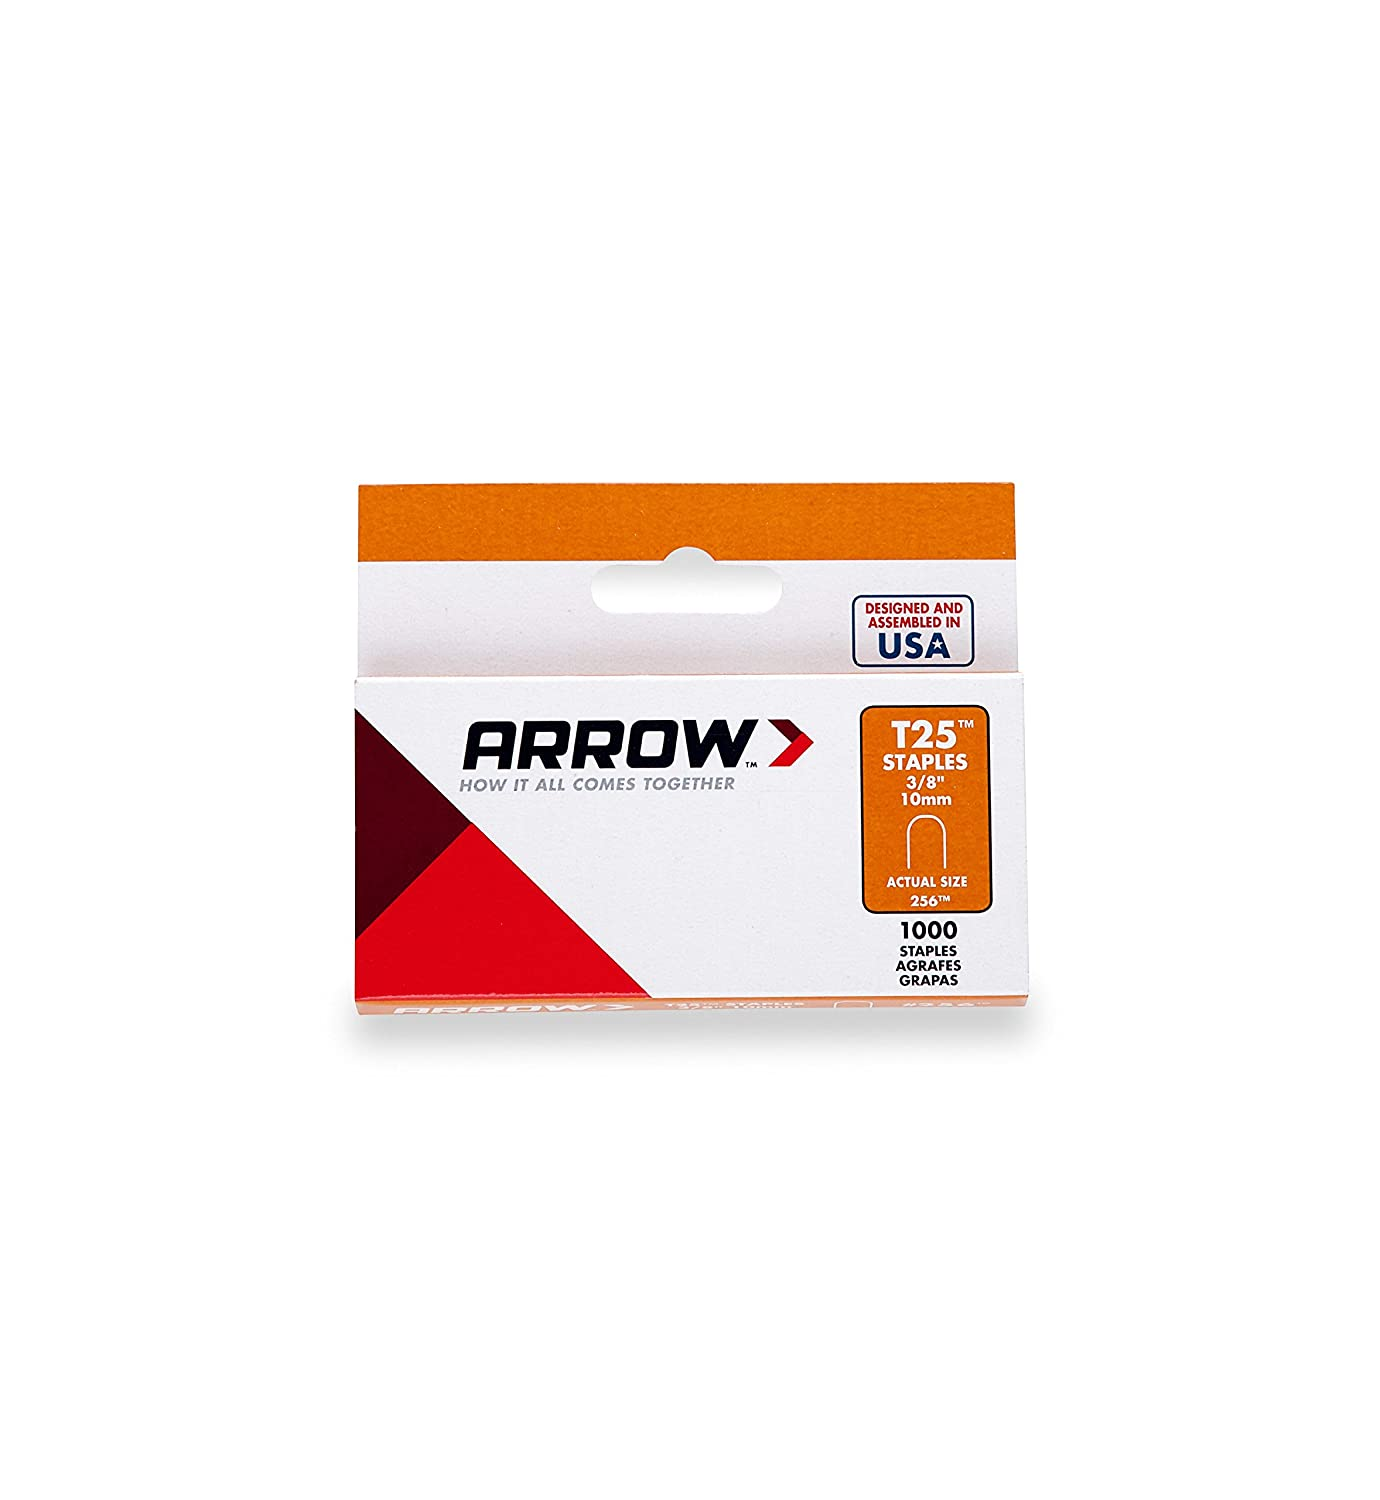 arrow t25 staples box 1000 10mm 3 8 inch diy tools